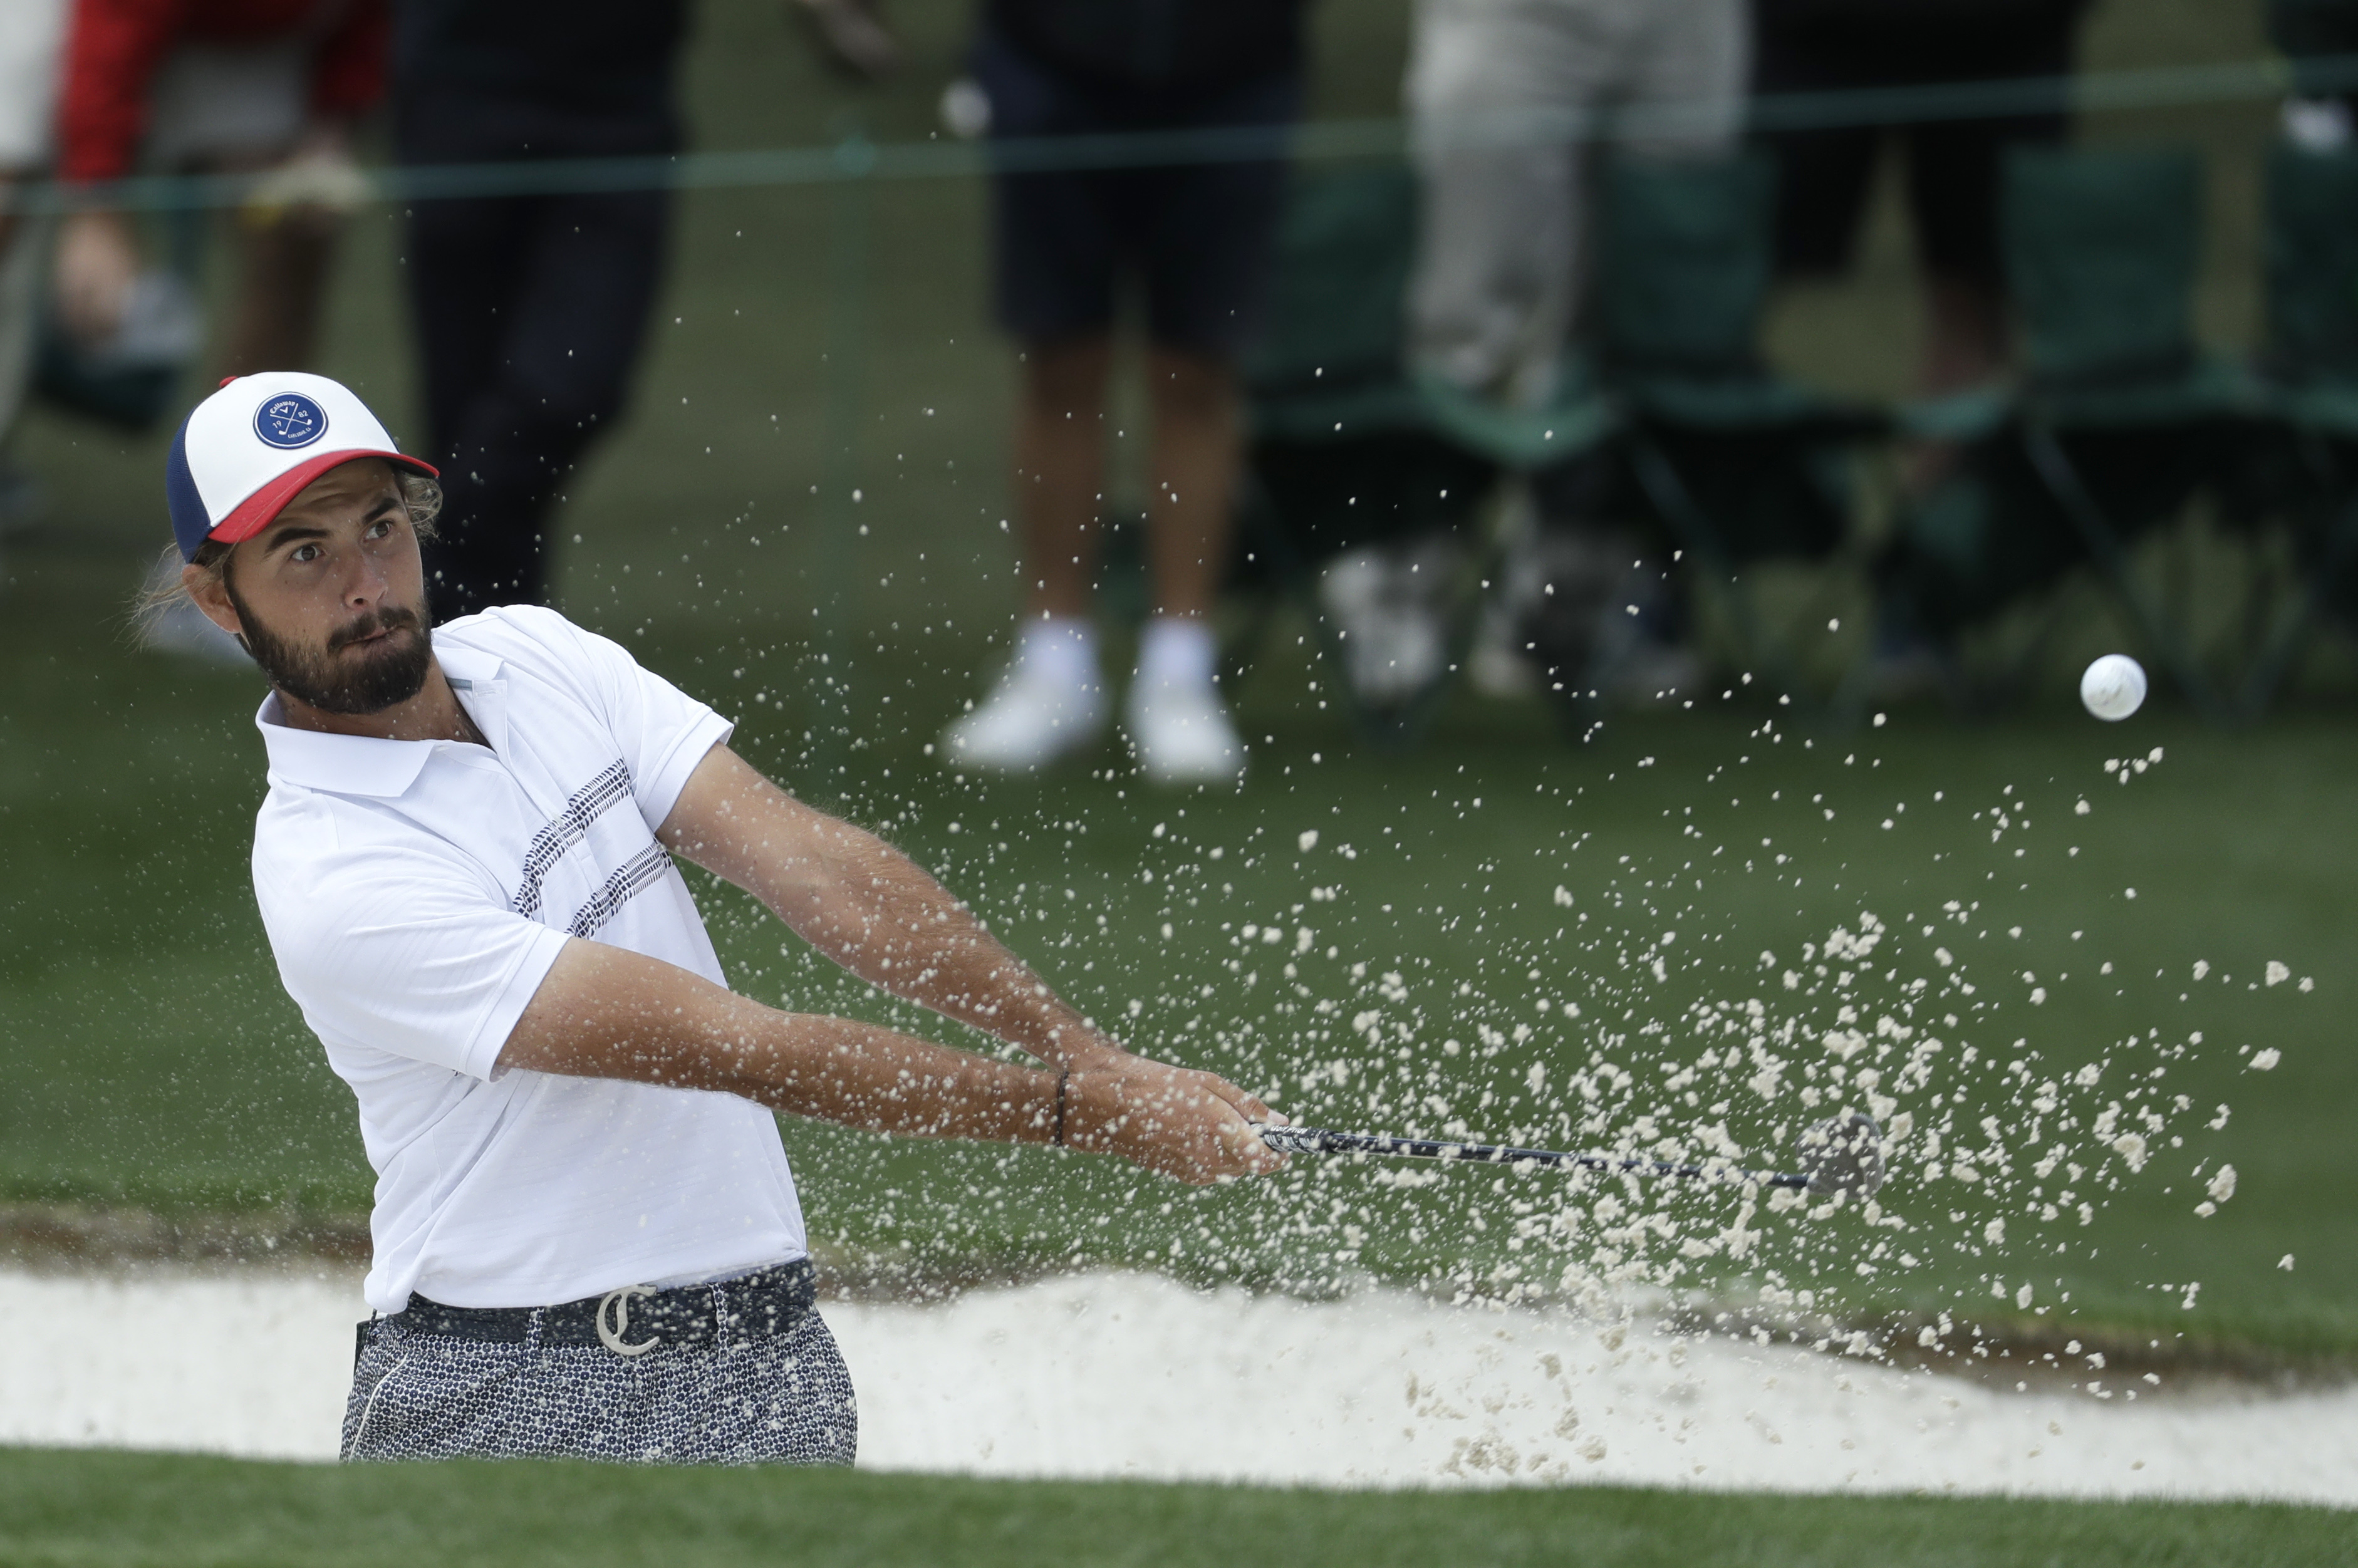 Curtis Luck of Australia, hits from a bunker on the second hole during the first round for the Masters golf tournament Thursday, April 6, 2017, in Augusta, Ga. (AP Photo/Chris Carlson)